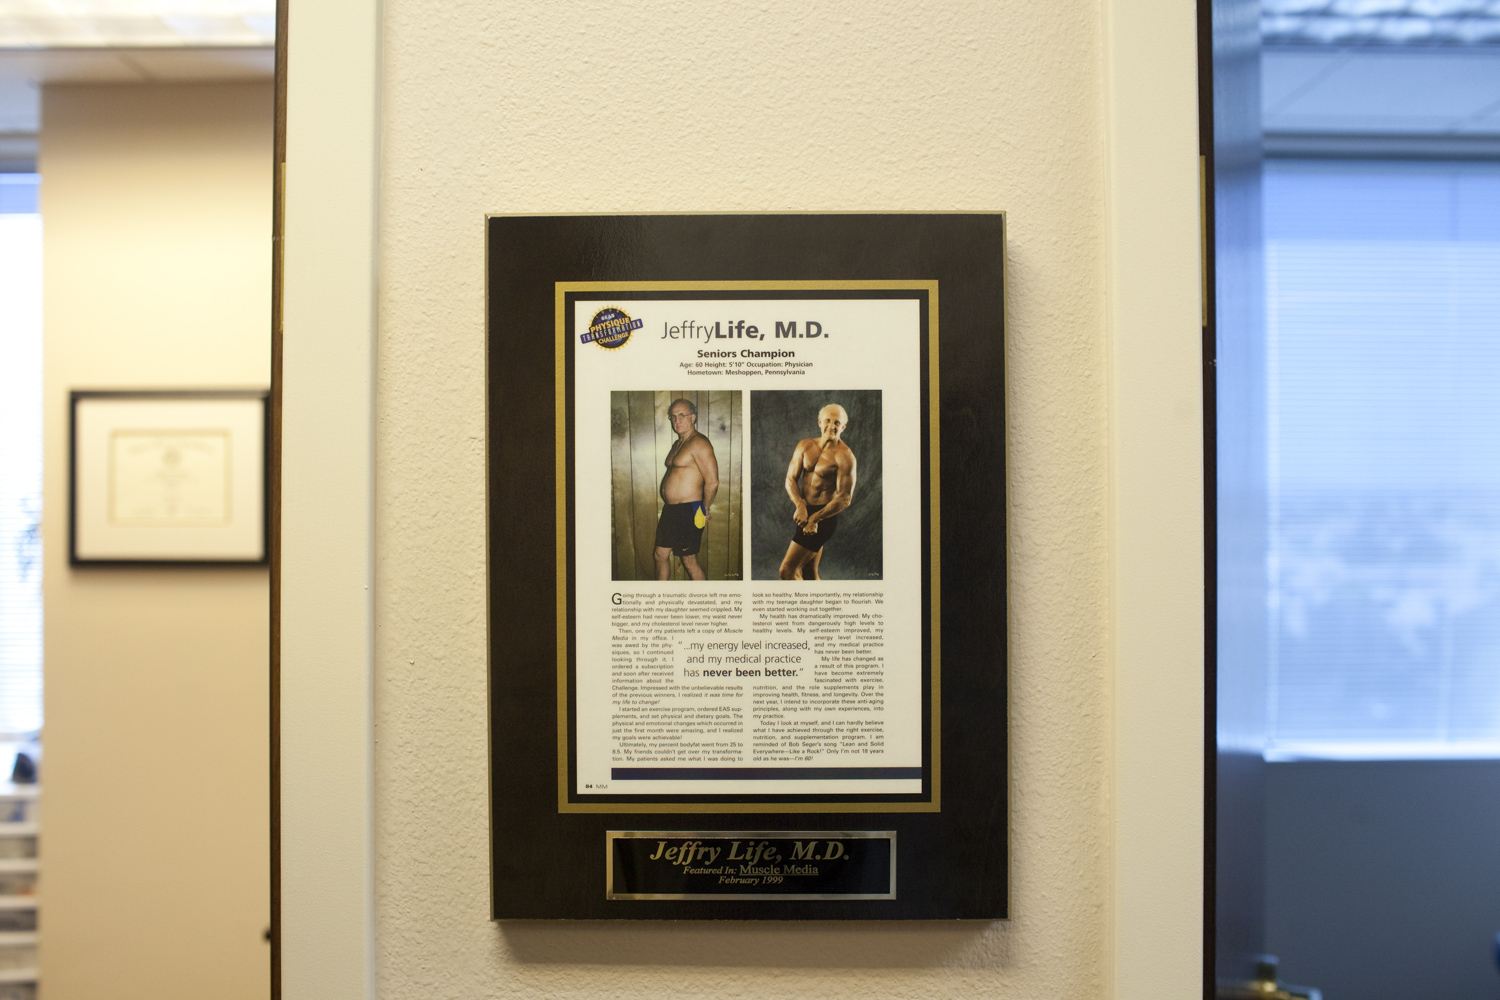 A placard in the office of Dr. Jeffery life showing before and after photos of himself prior to his being a patient at Cenegenics.